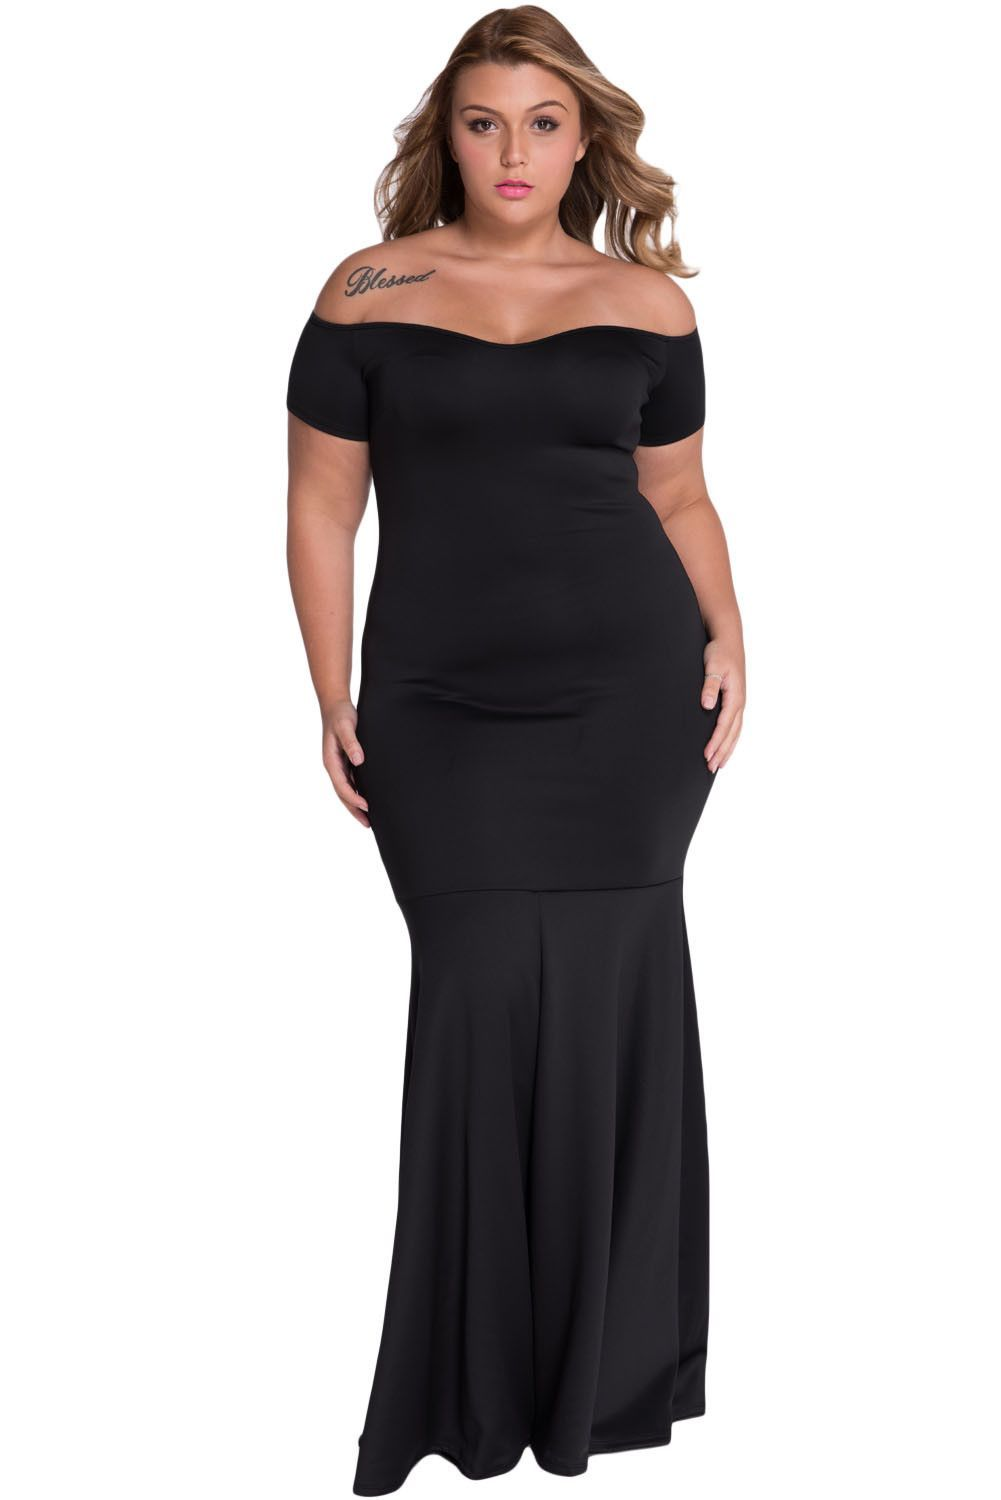 b32e9626dd3 Dress to impress in our stunning black mermaid fishtail dress